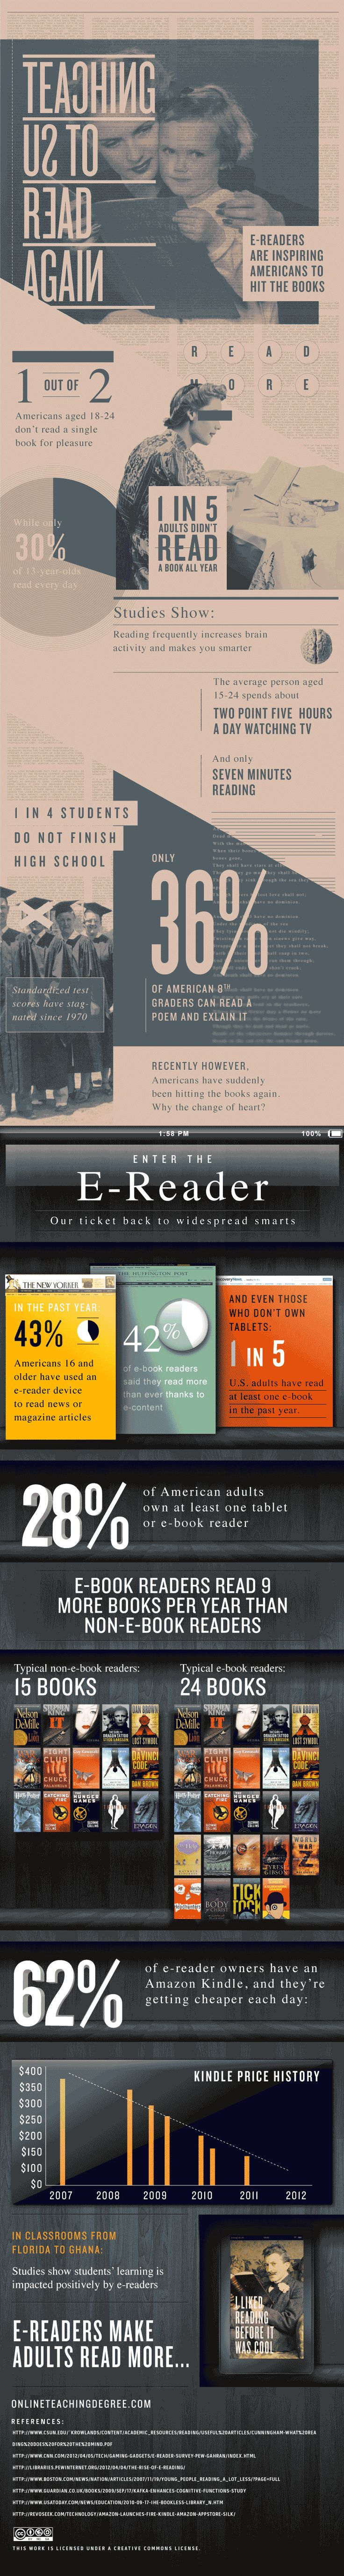 How Ereaders Are Teaching Us To Read Again